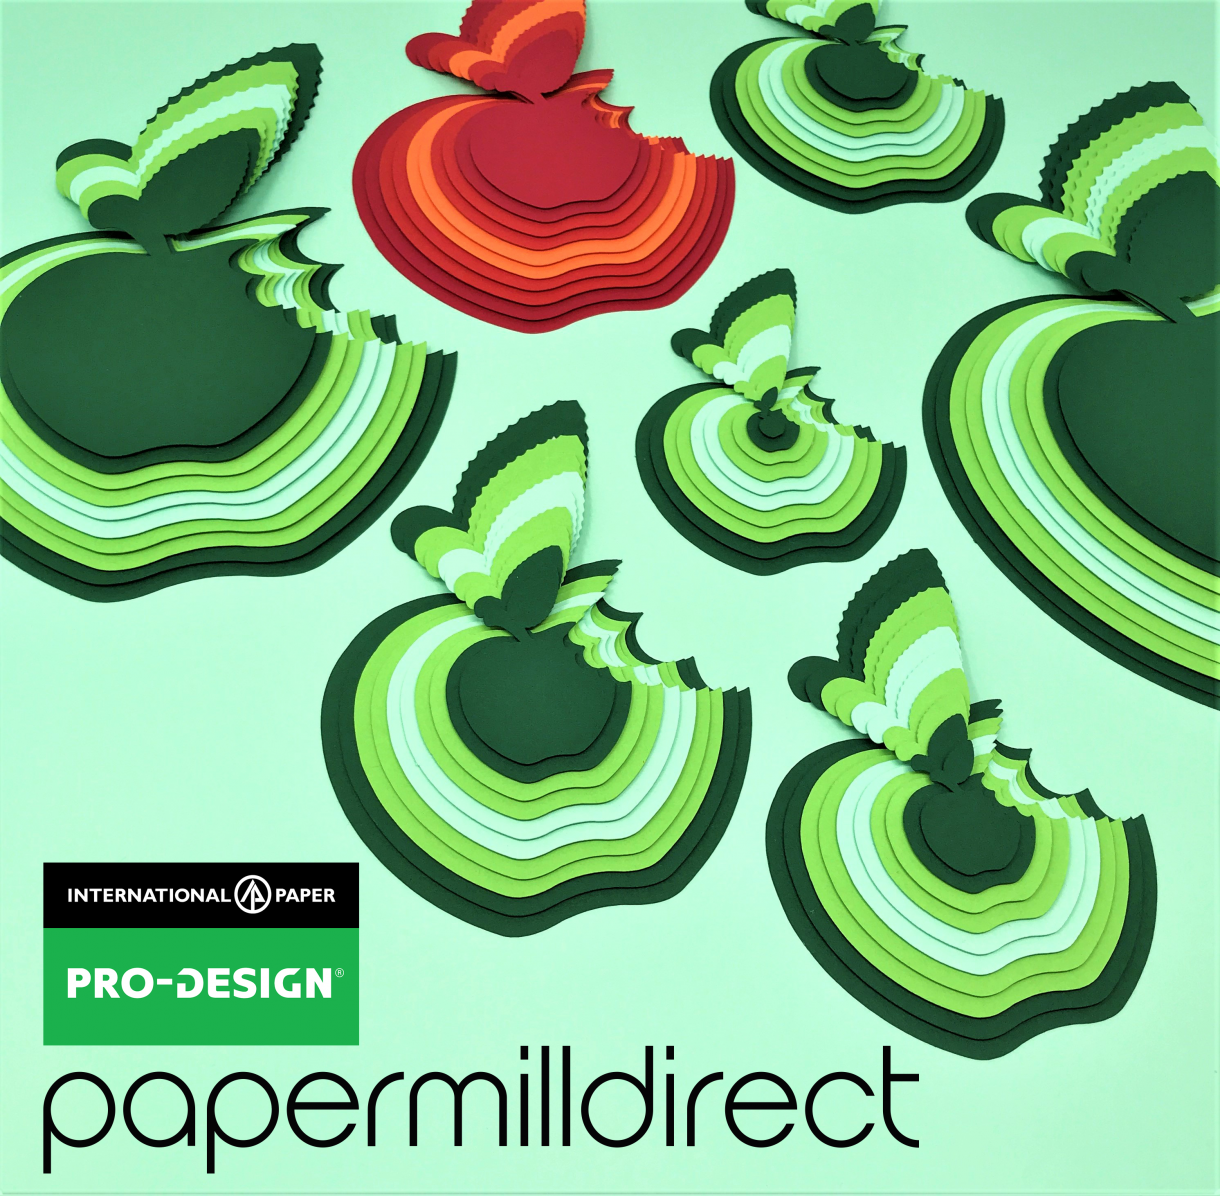 Papermilldirect Pro Design